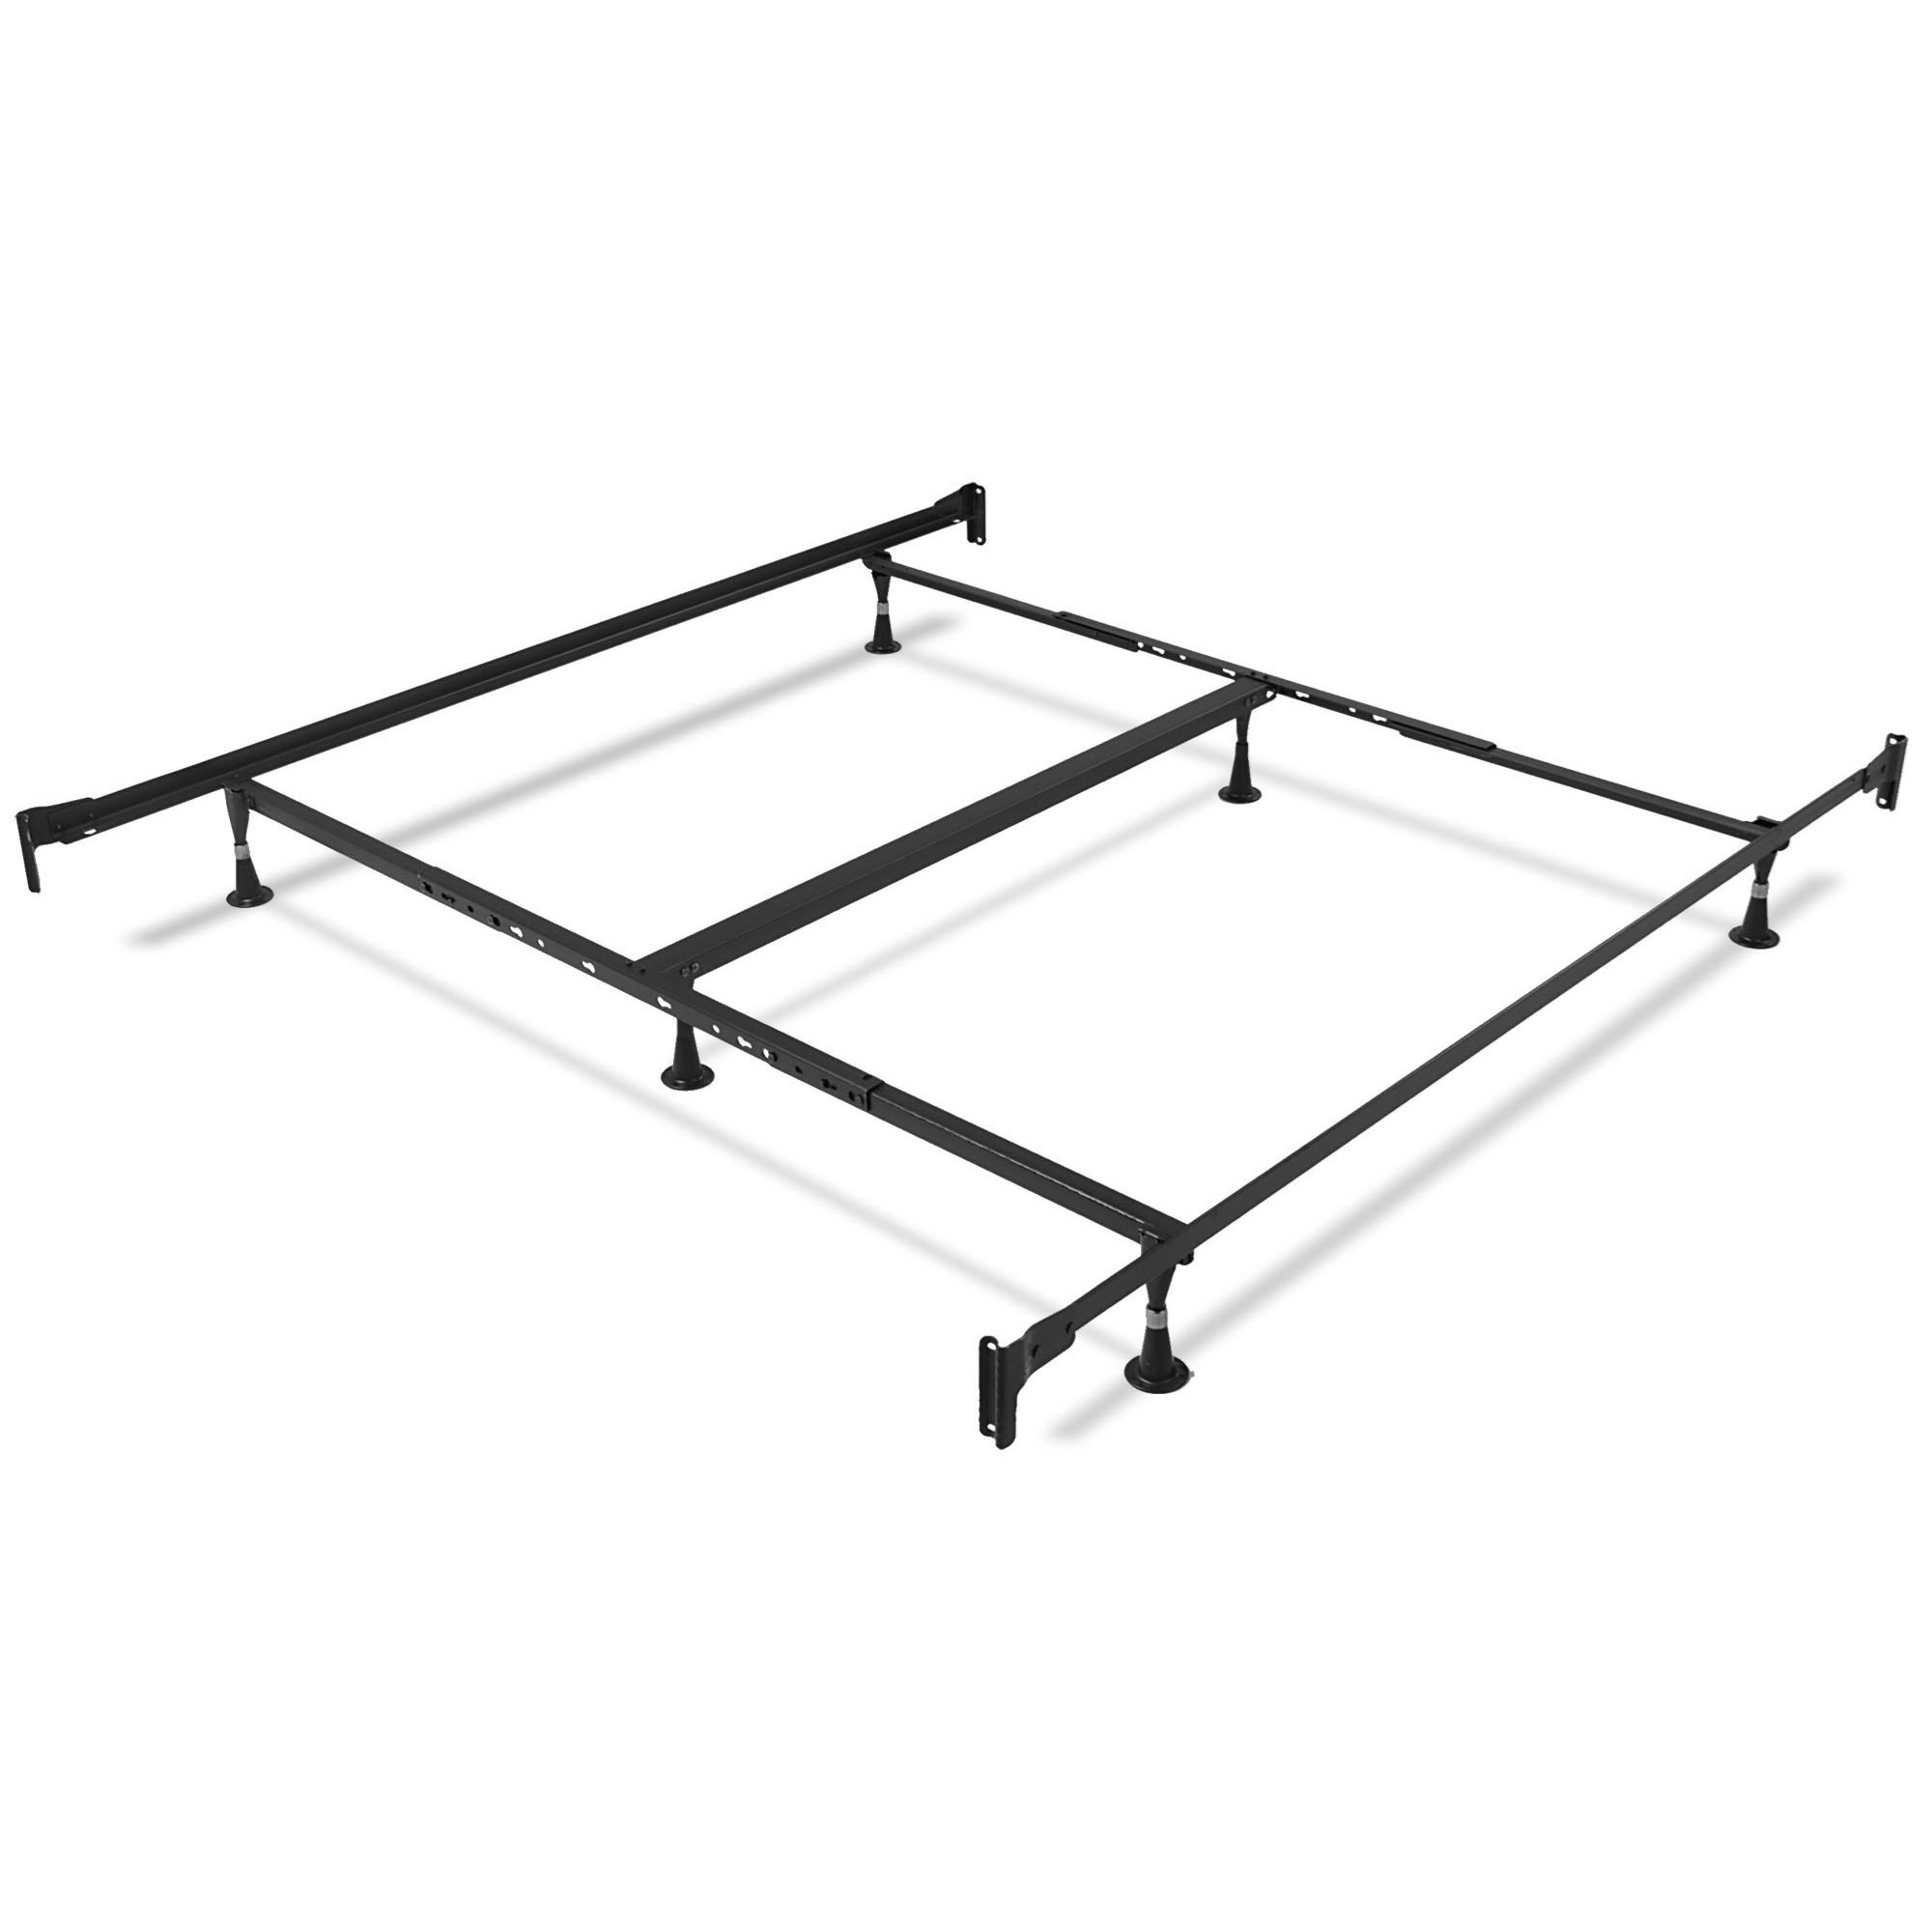 Fashion Bed Group Wood And Metal Beds B91d05 Queen Dunhill